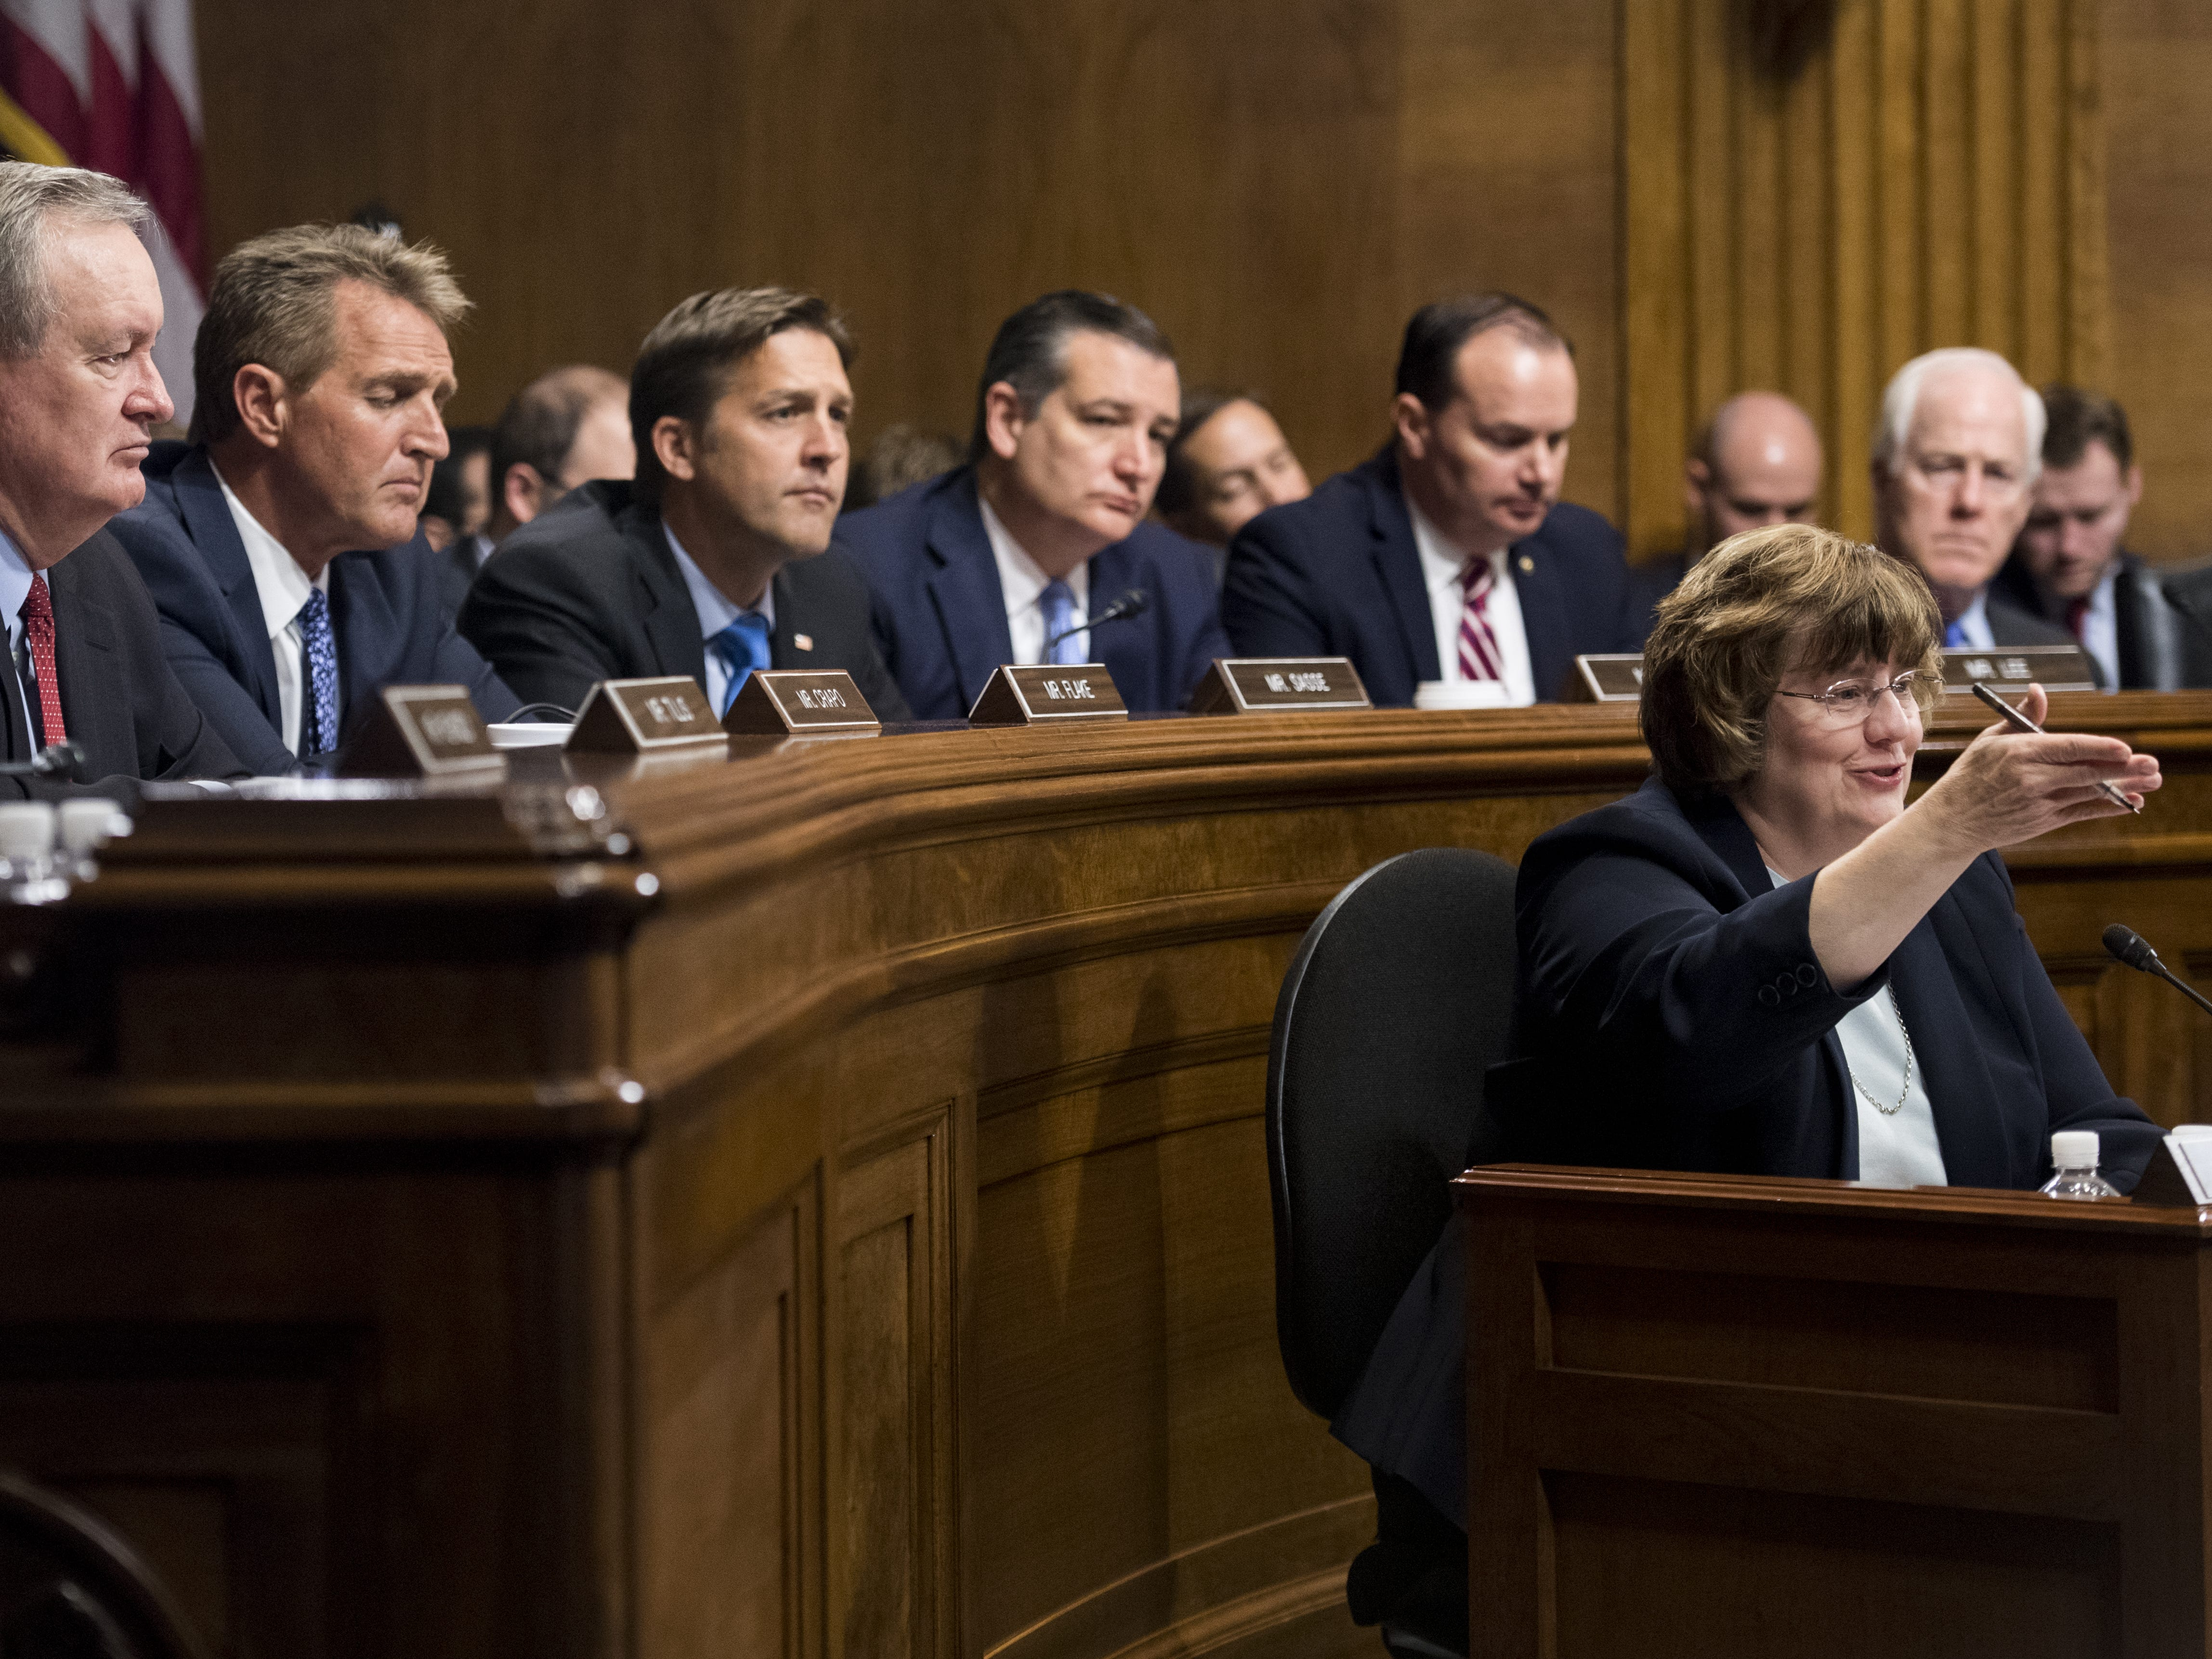 WASHINGTON, DC - SEPTEMBER 27: Rachel Mitchell, counsel for Senate Judiciary Committee Republicans, questions Dr. Christine Blasey Ford as Senators, from left, Ben Sasse, R-Neb., Ted Cruz, R-Texas, Mike Lee, R-Utah.,  and John Cornyn, R-Texas, listen during the Senate Judiciary Committee hearing on Capitol Hill September 27, 2018 in Washington, DC. A professor at Palo Alto University and a research psychologist at the Stanford University School of Medicine, Ford has accused Supreme Court nominee Judge Brett Kavanaugh of sexually assaulting her during a party in 1982 when they were high school students in suburban Maryland. (Photo By Supporters of Supreme Court nominee Brett Kavanaugh gather outside of the Dirksen Senate Office Building-Pool/Getty Images) ORG XMIT: 775234142 ORIG FILE ID: 1041760028